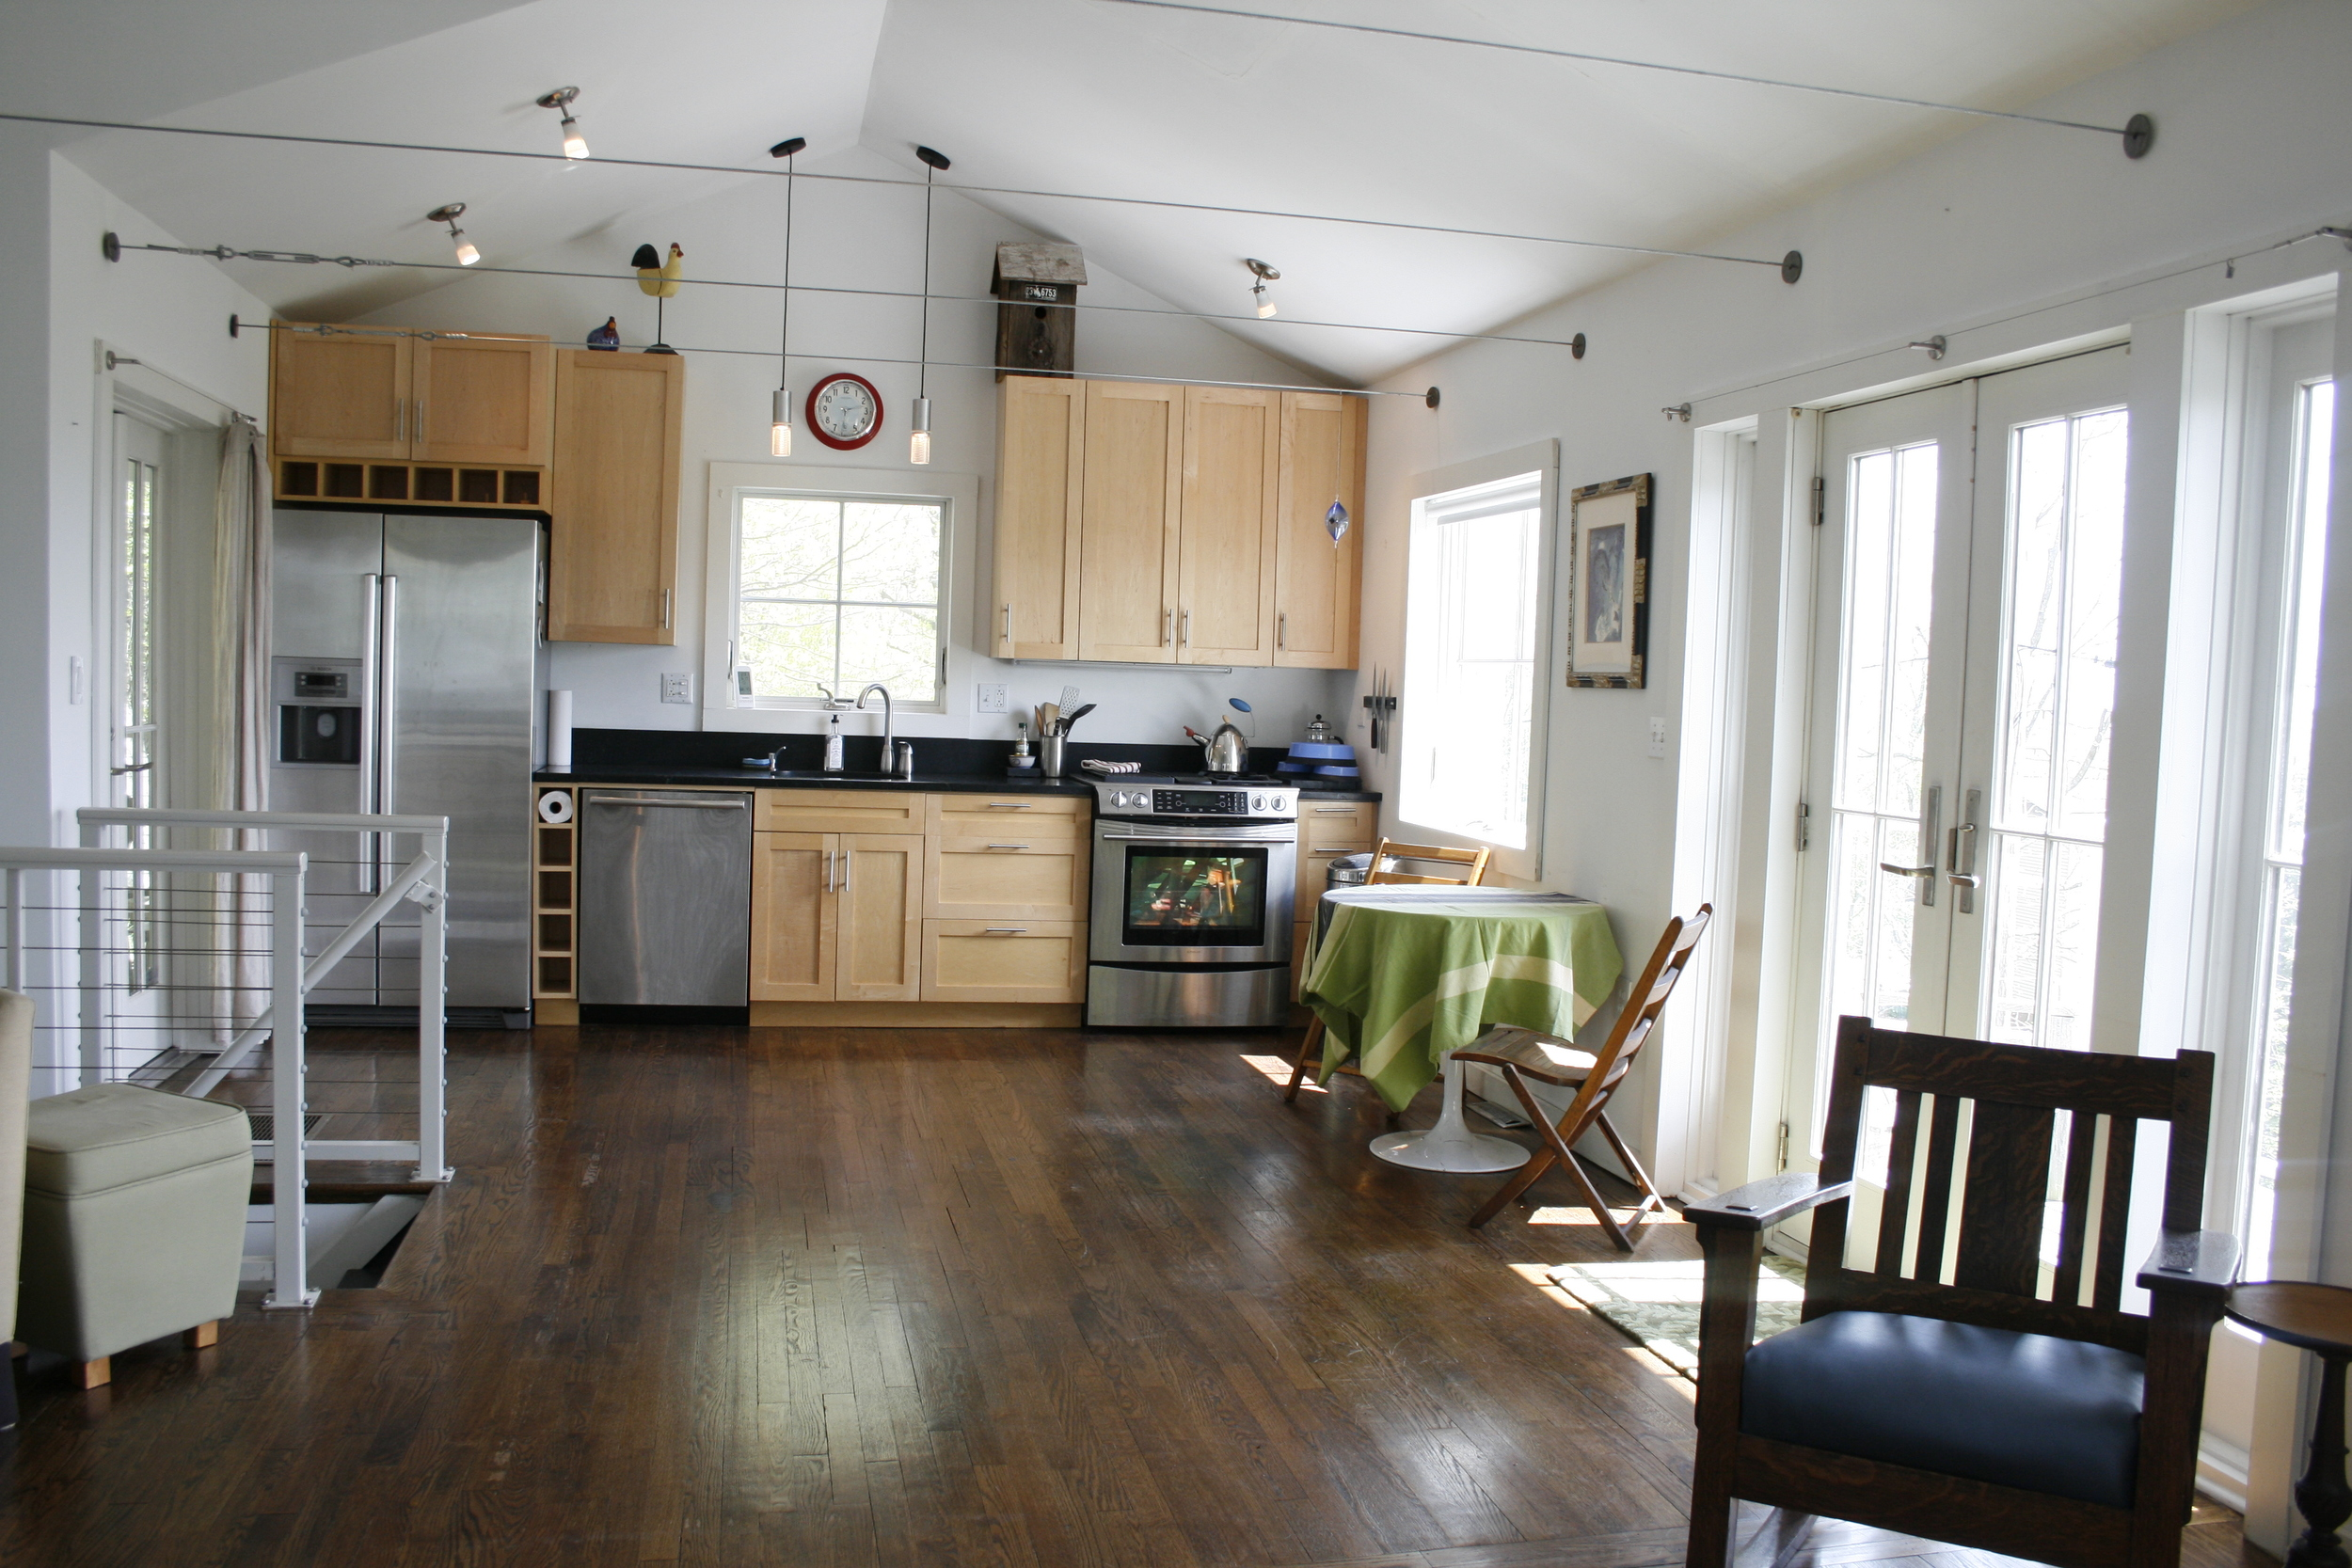 Reservoir Perch, a cool 1 bedroom in Napanoch, NY for sale